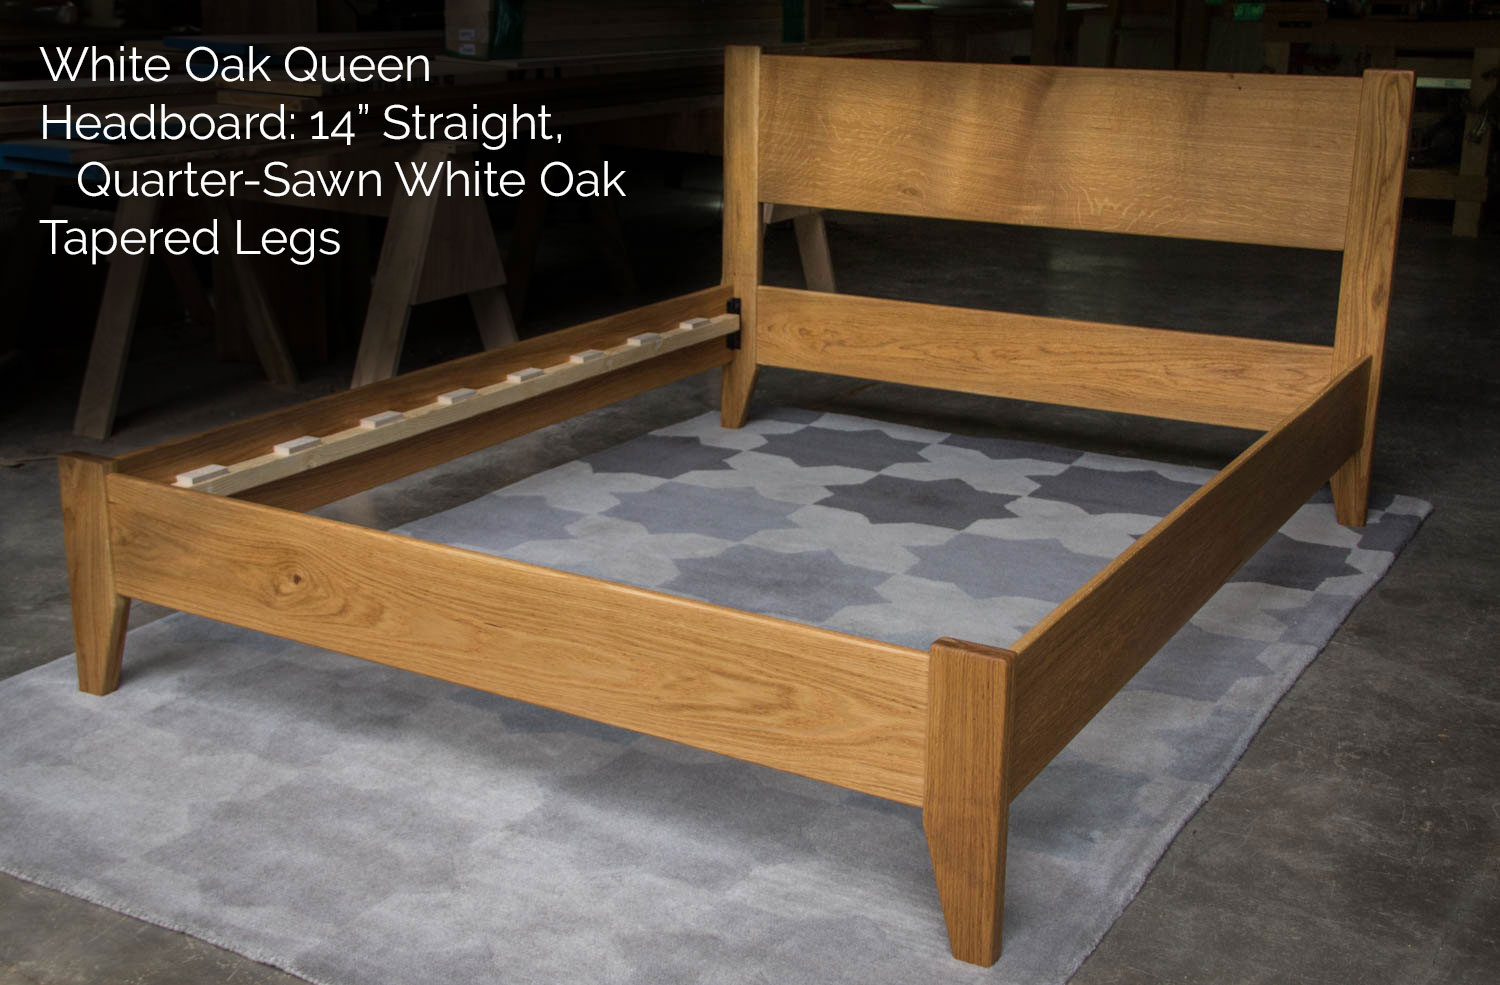 Mountain Mule Hardwoods Beds With Straight Headboards